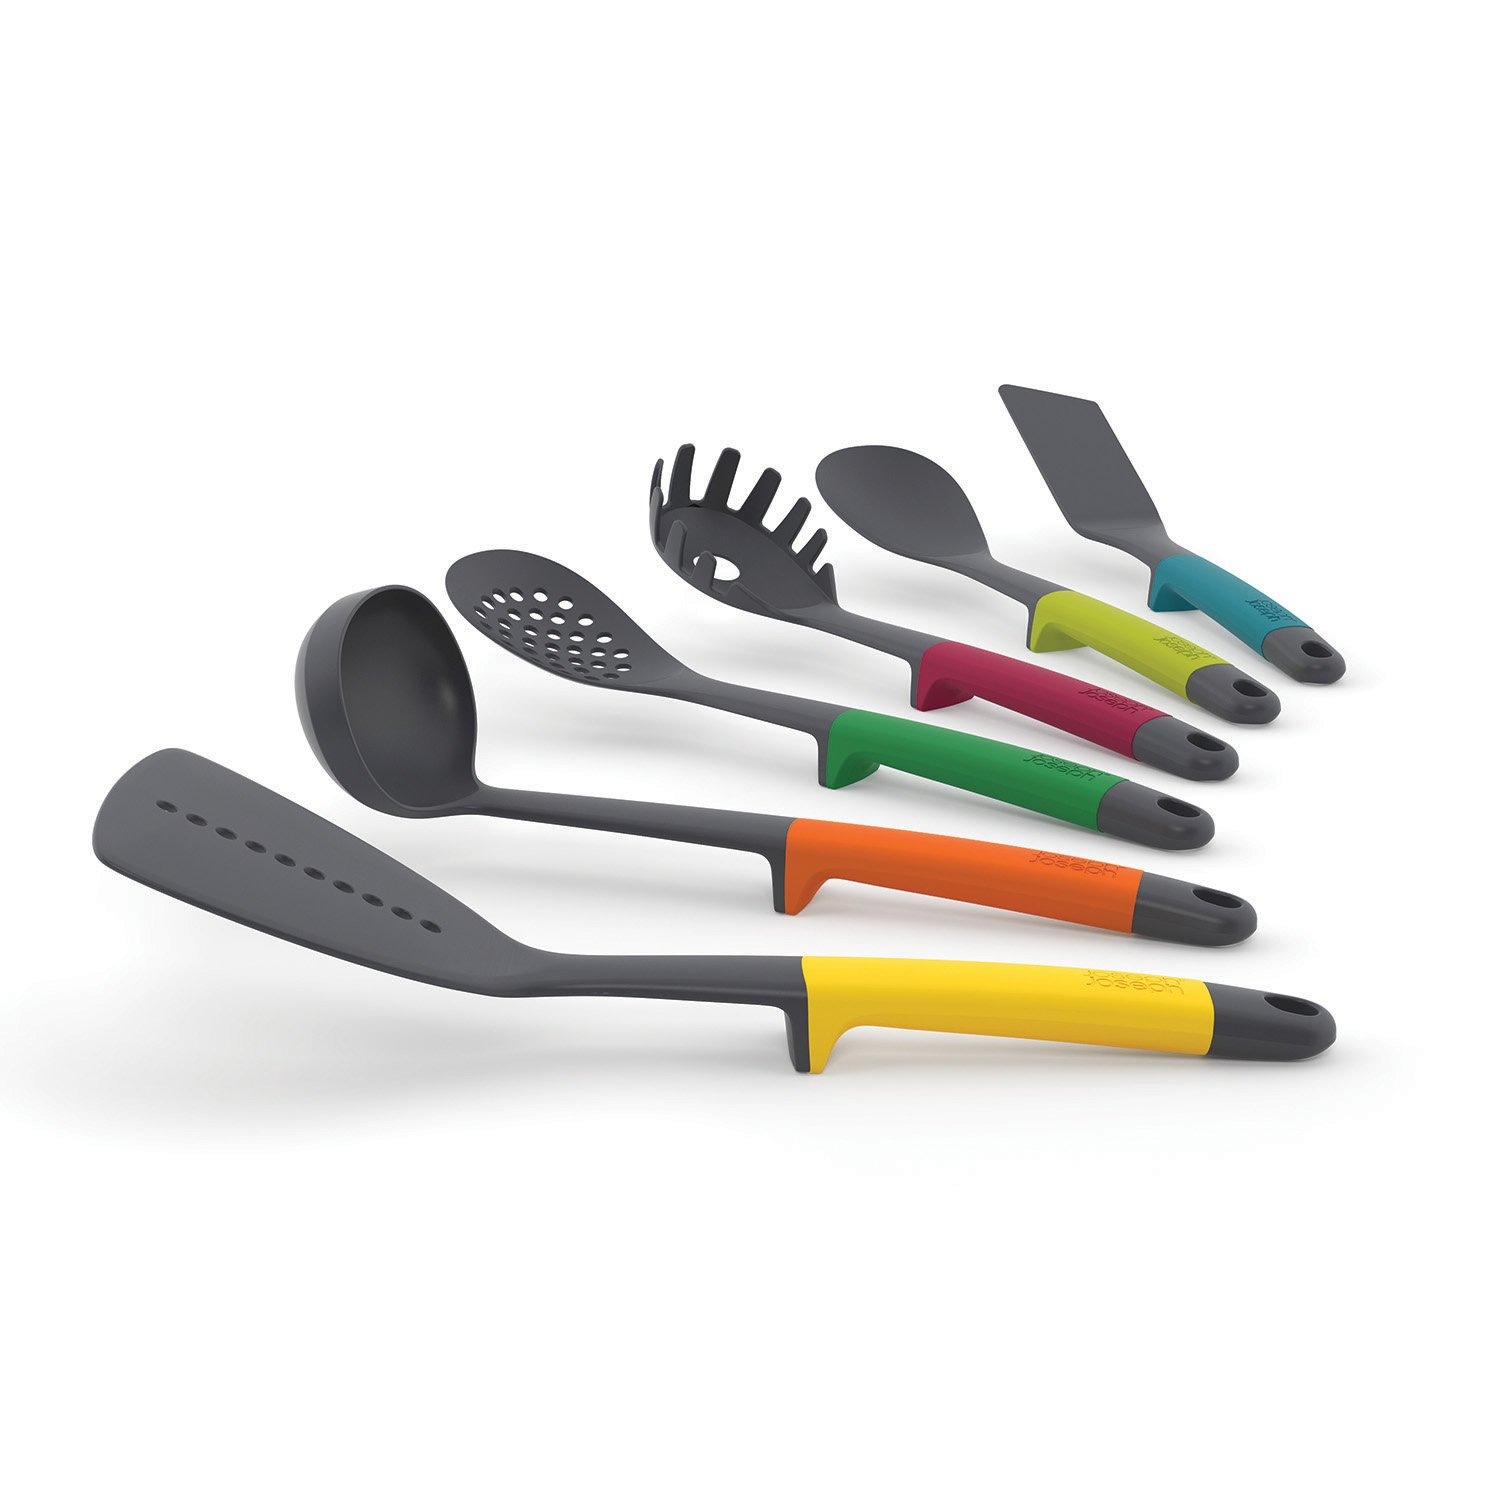 Amazon.com: Joseph Joseph Elevate 6-Piece Kitchen Tool Set: Kitchen ...